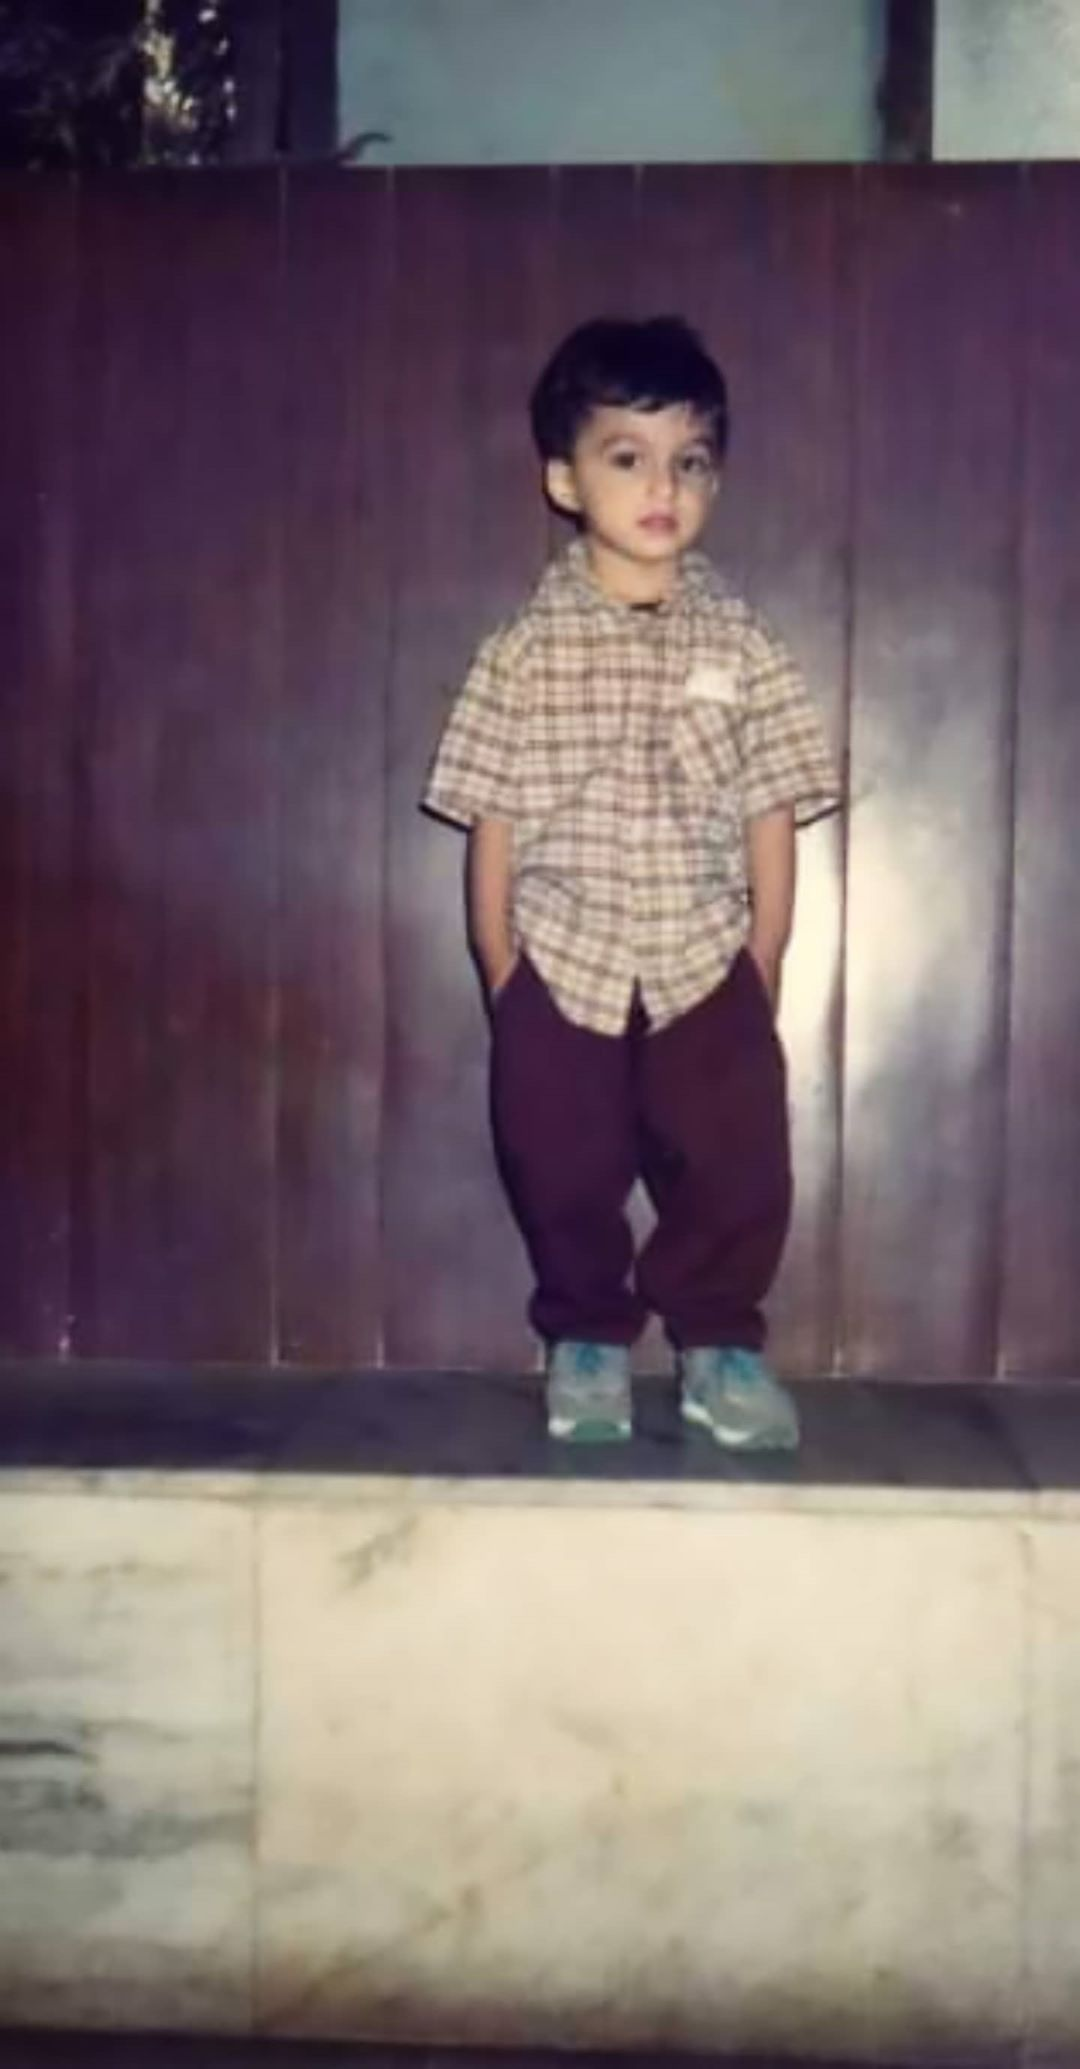 Yeh Rishta Kya Kehlata Hai actor Mohsin Khan's childhood pictures REVEALED!